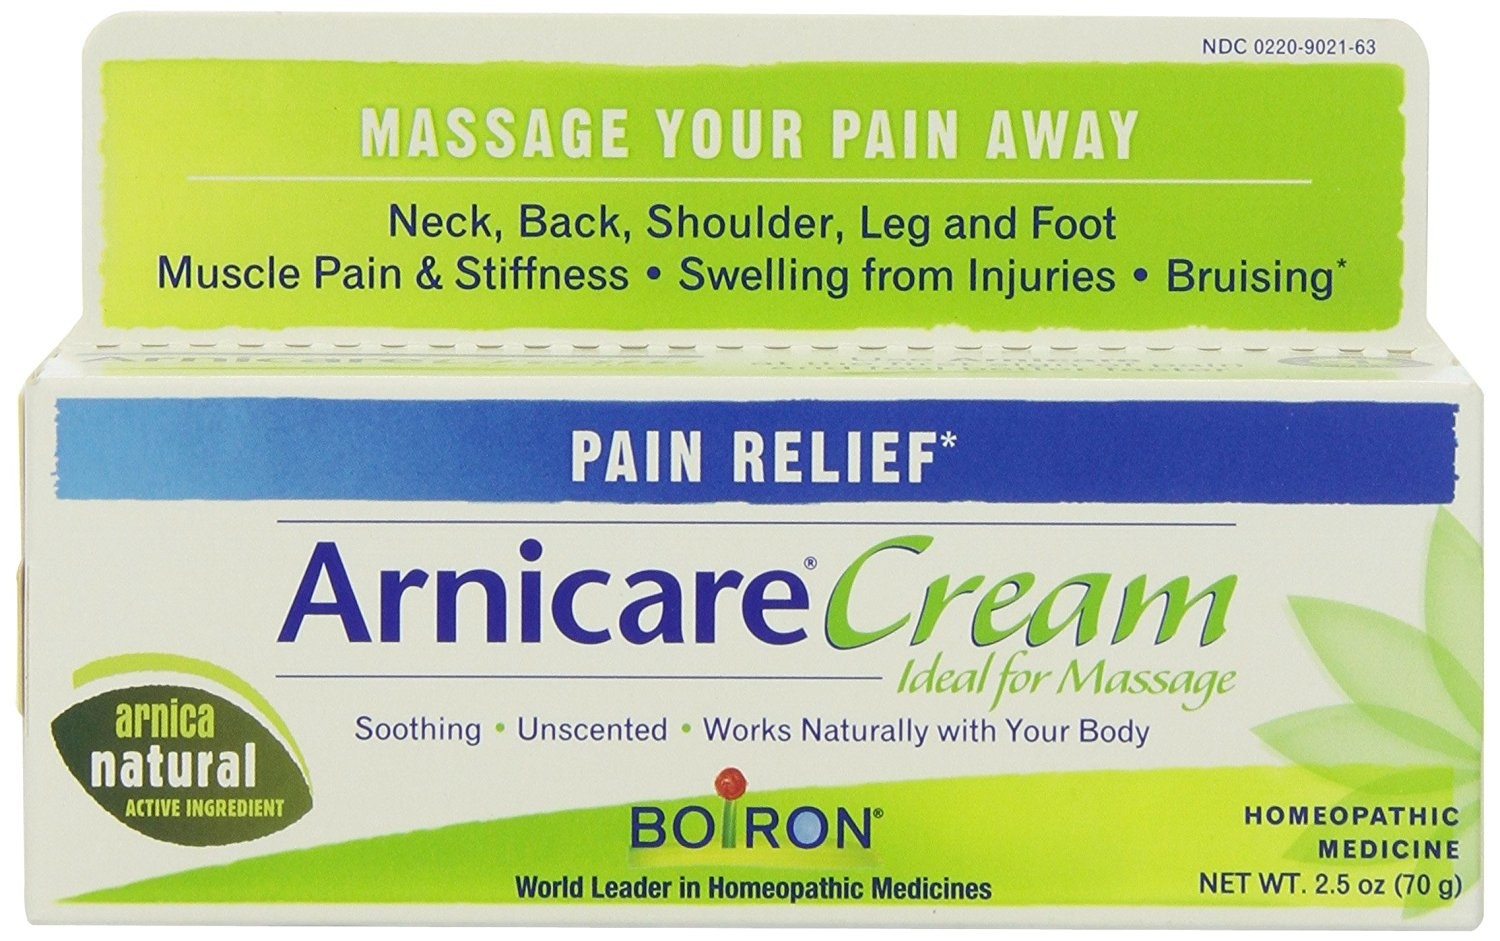 Thousands Of People Swear By This Cream For Pain And Bruising